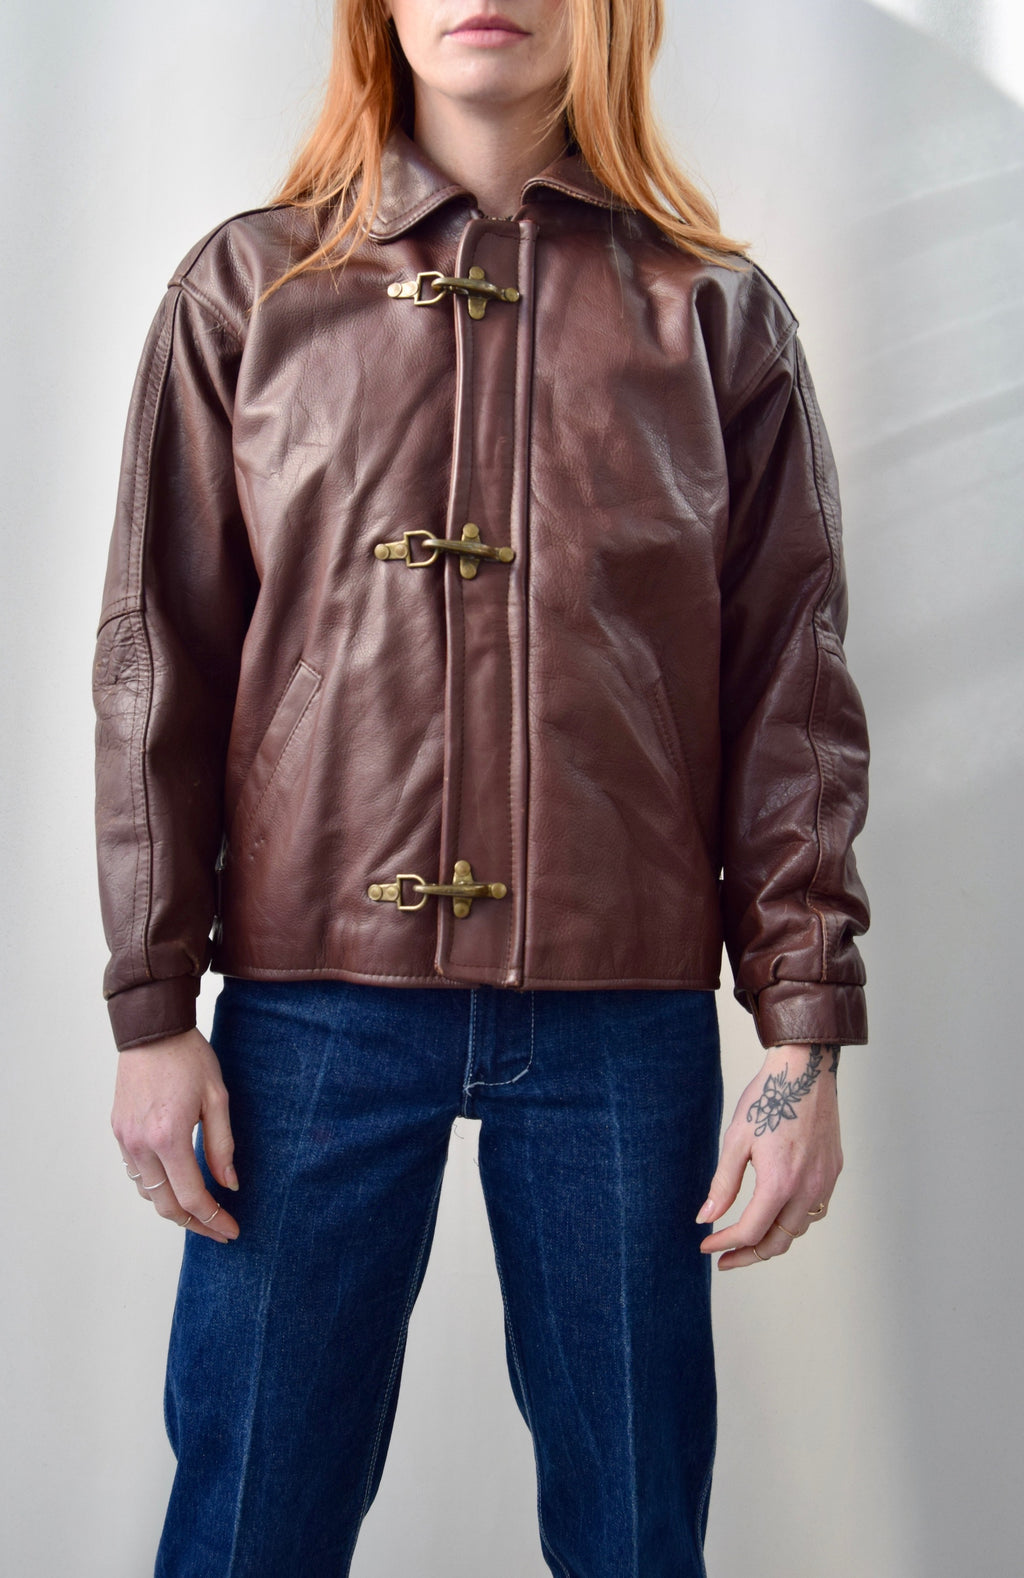 40's Inspired Leather Jacket